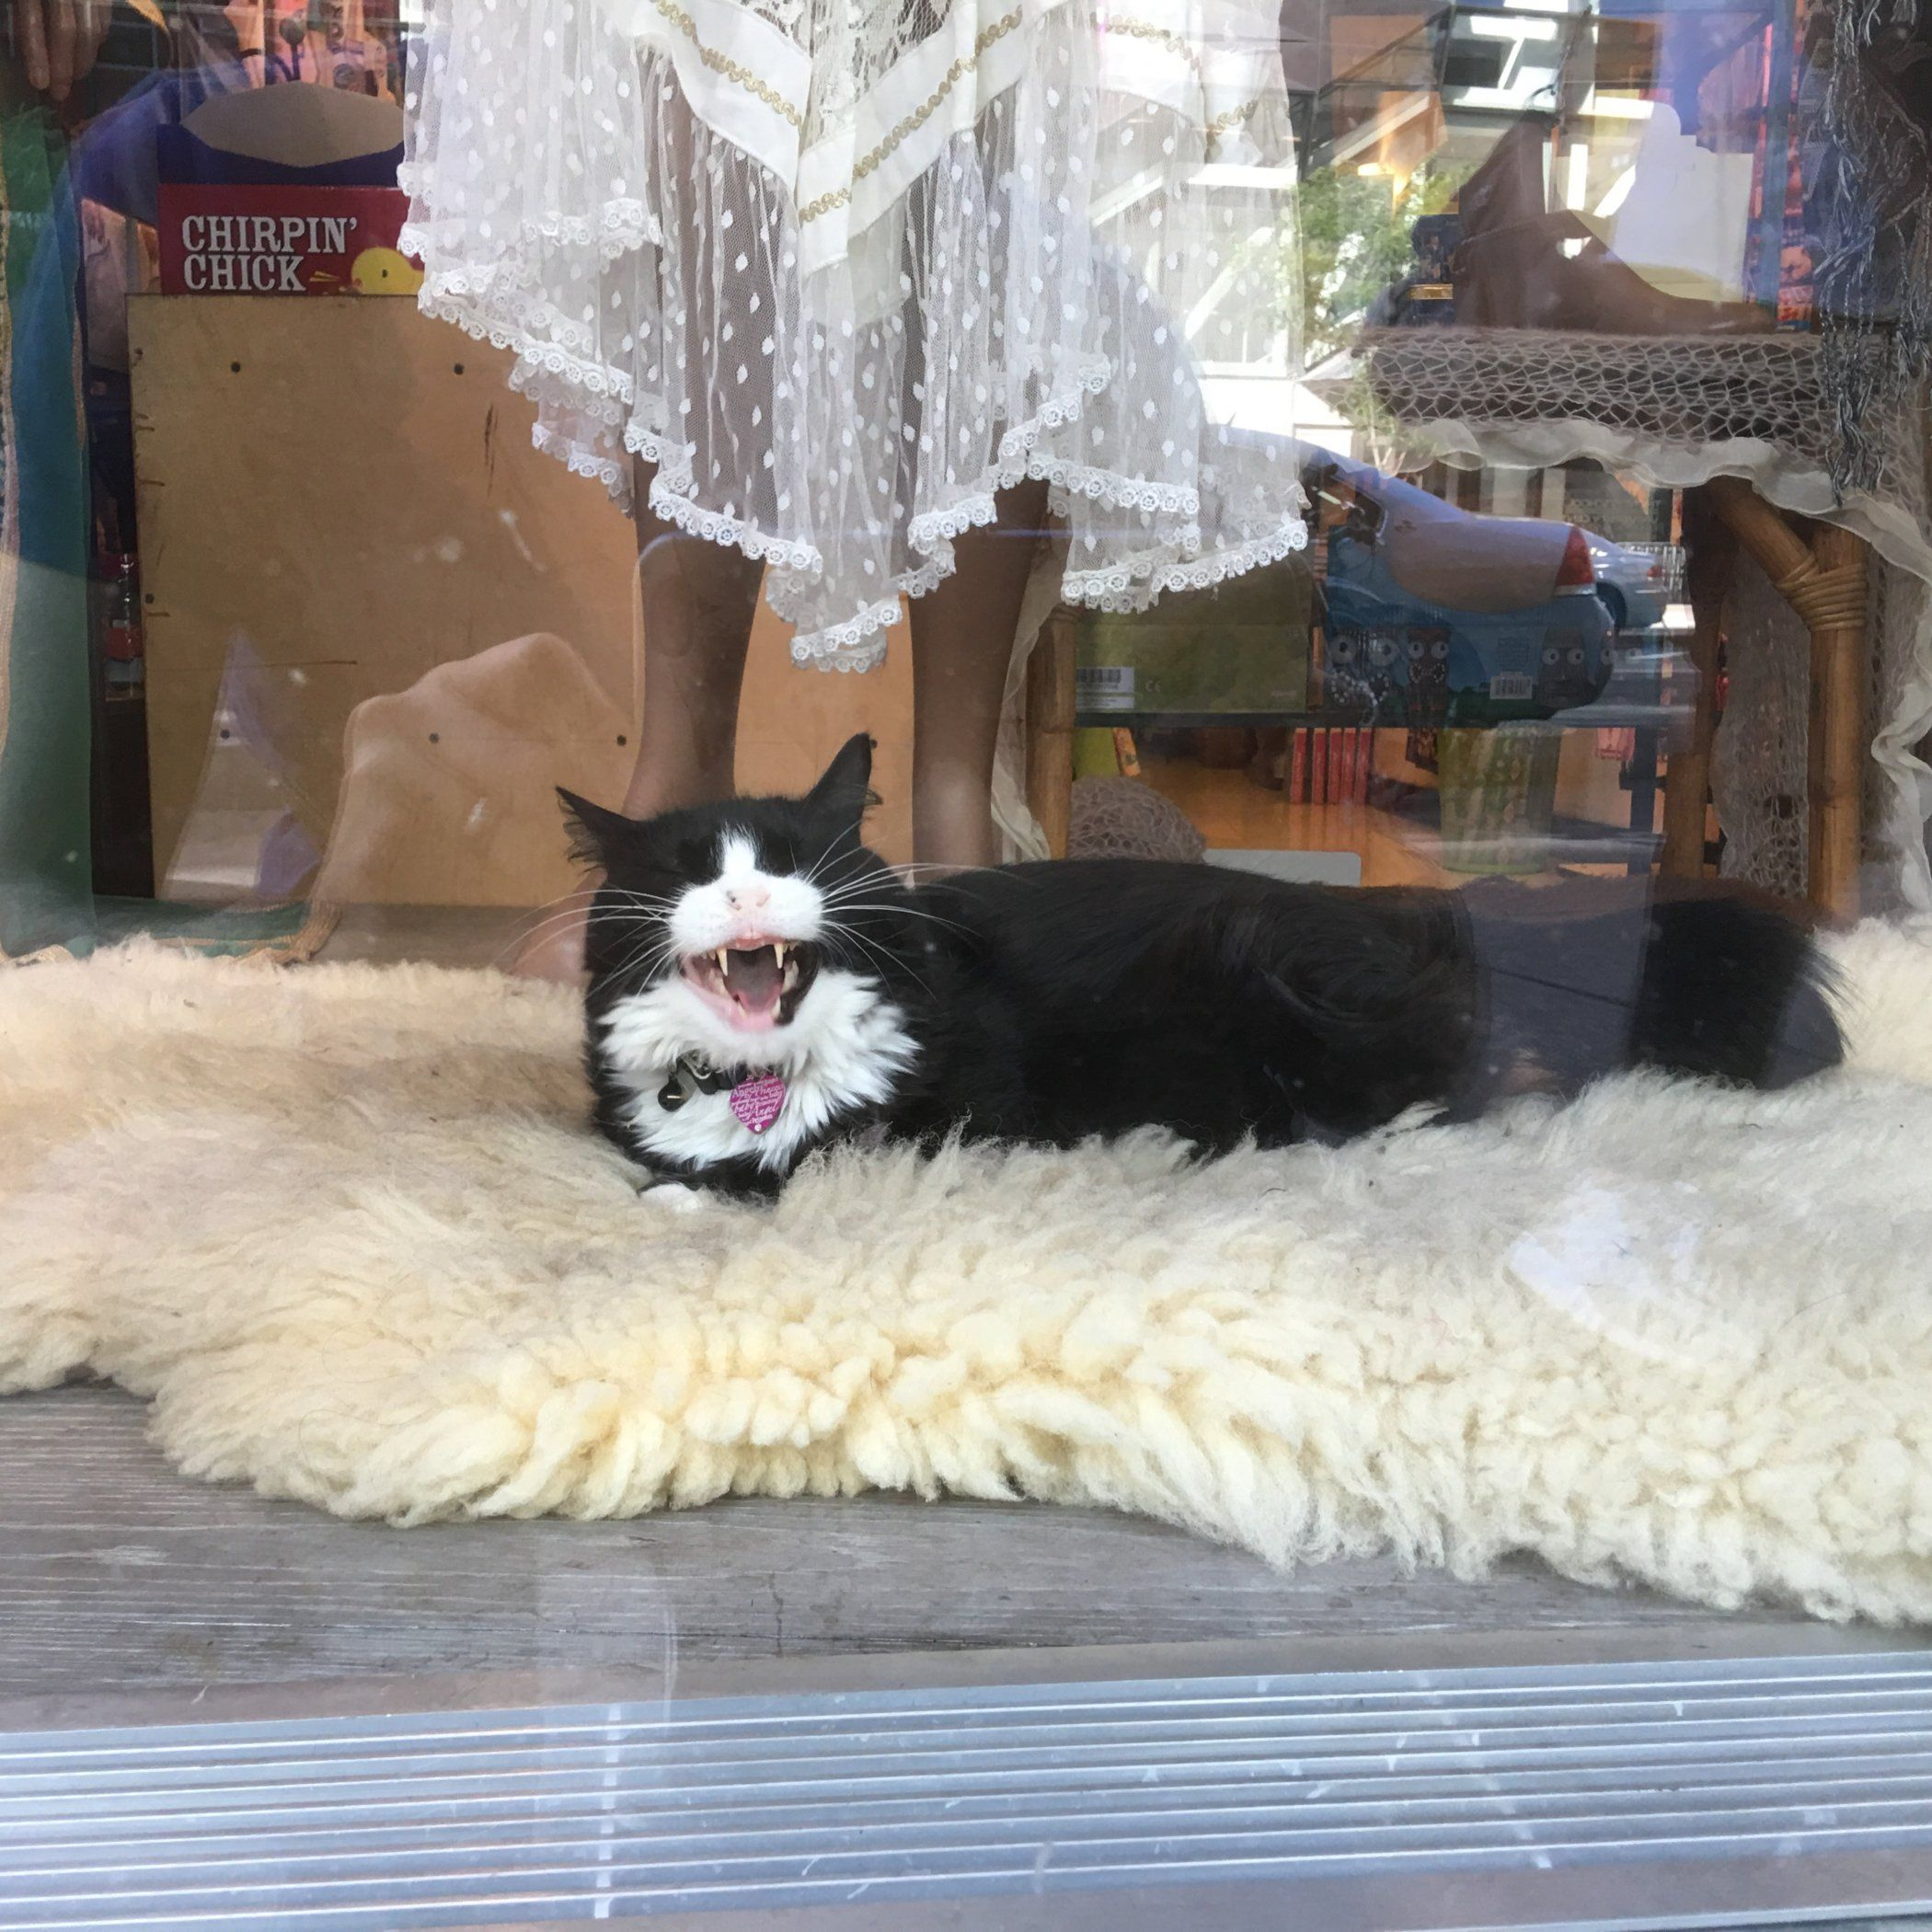 The Felines of New York: The Shop Window Cat   Hi everyone, We are back today with another little post on our felines of New York. It comes as no surprise that there is a whole book on the felines of the city available as it certainly seemed that we bumped into another cat at every street corner! This particular beautiful cat was resting on […]   #Cat, #Cats, #Cute, #Funny, #Katze, #Katzen, #Katzenworld, #Kawaii, #Pets, #ねこ, #猫 #CatTravel, #USA